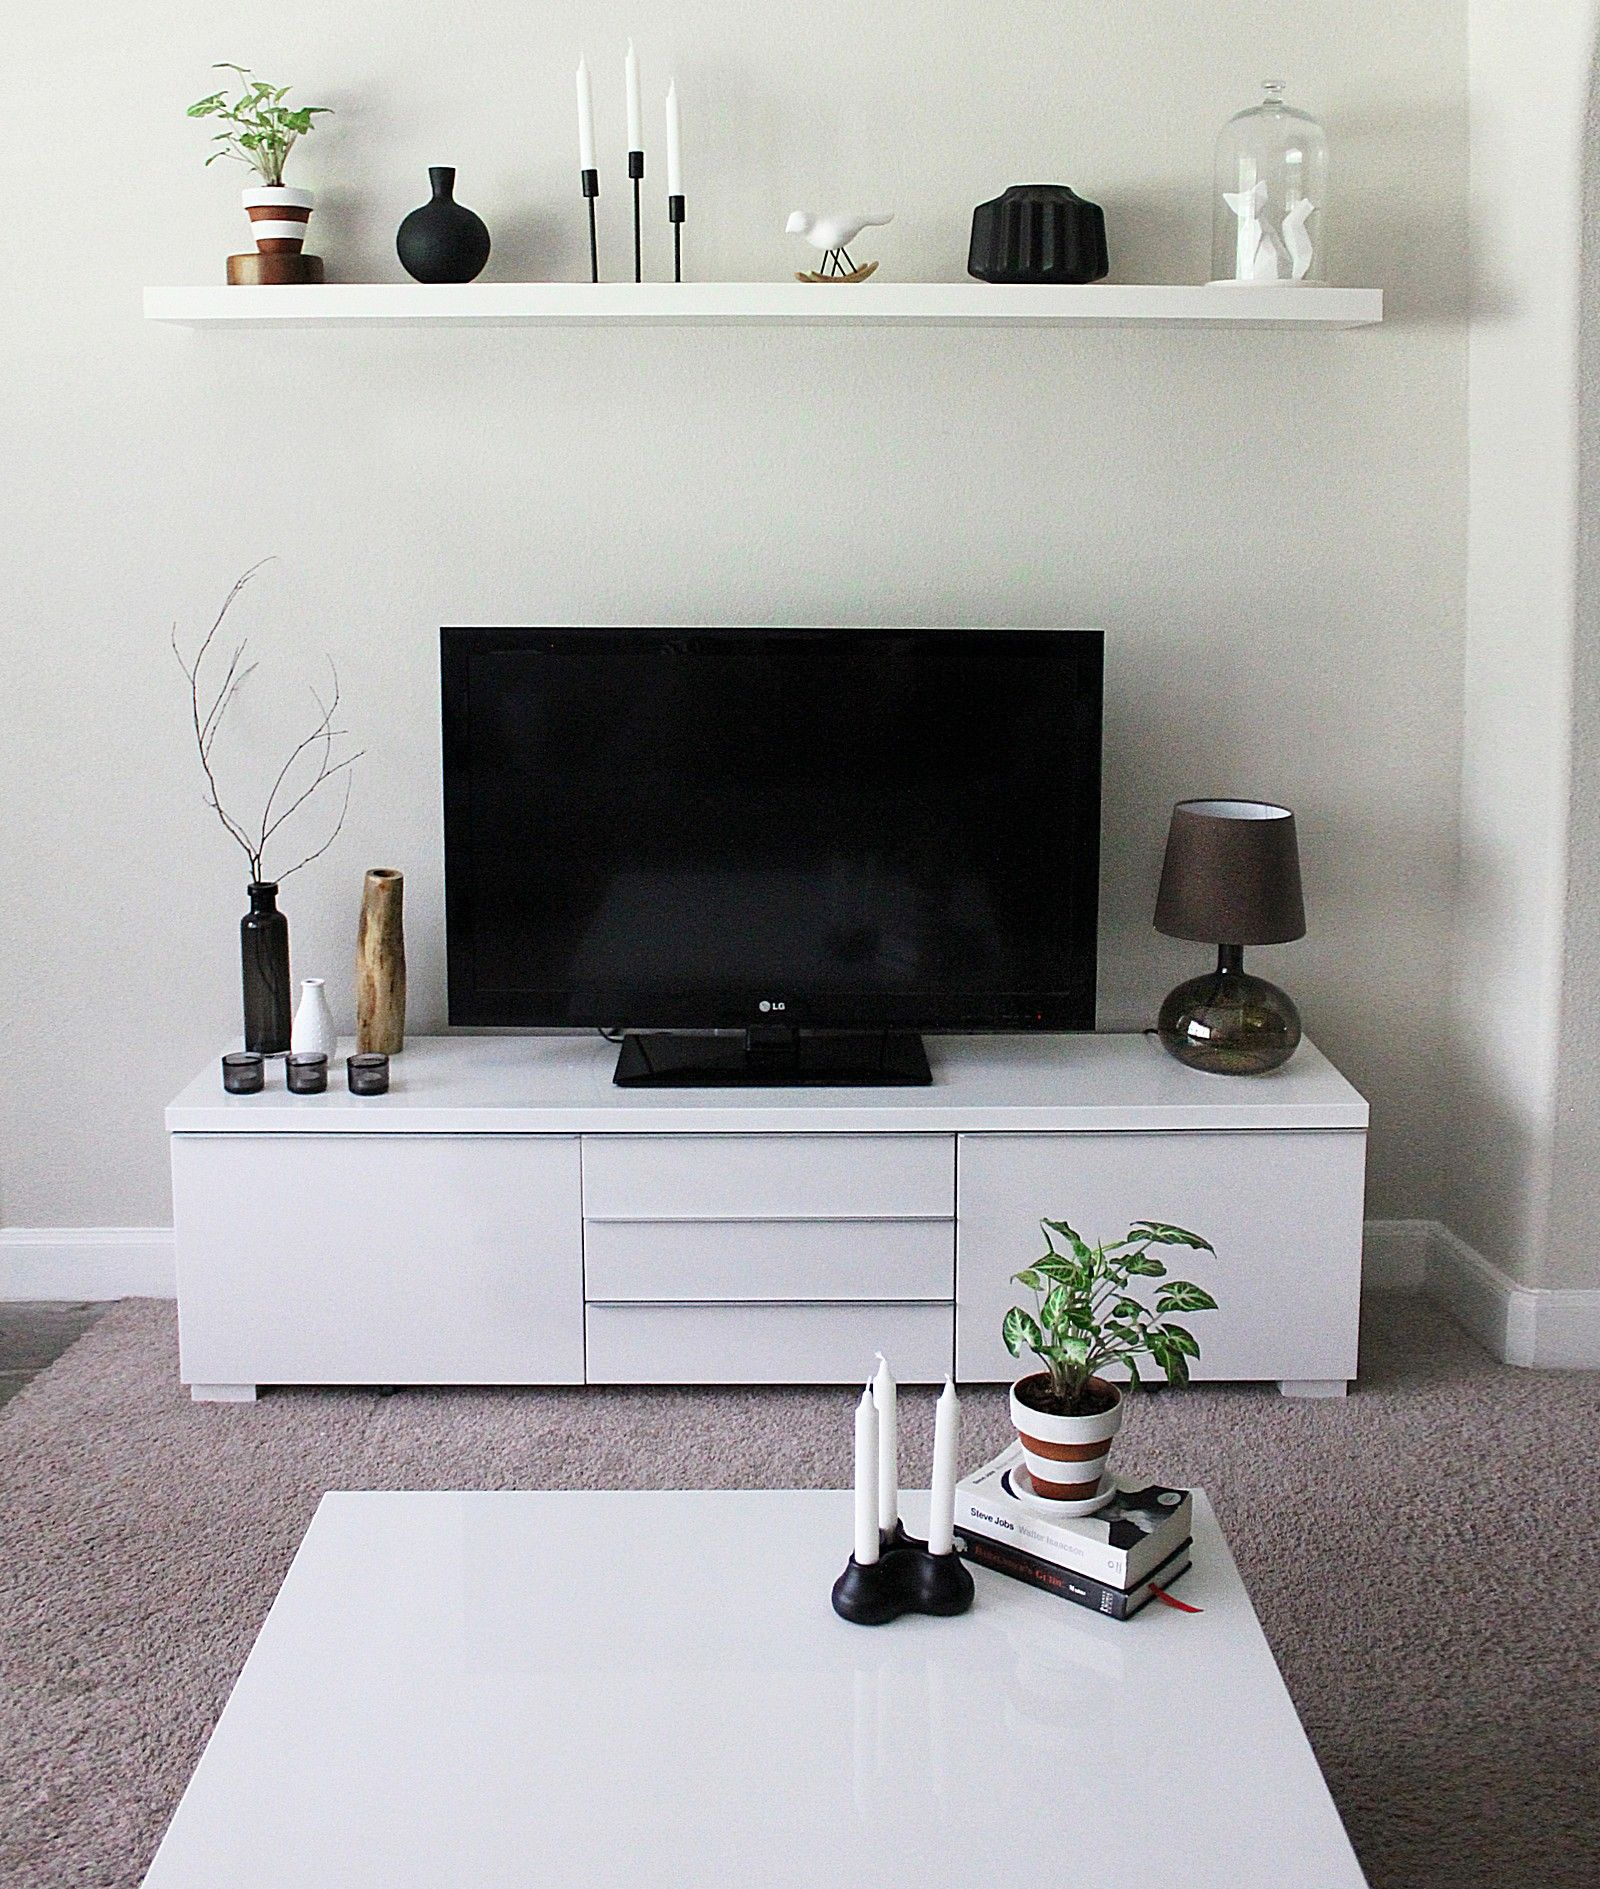 Tv Stand Living Room Office Desk In Minimalist And Cabinet Ikea Besta Interiors Design Ideas